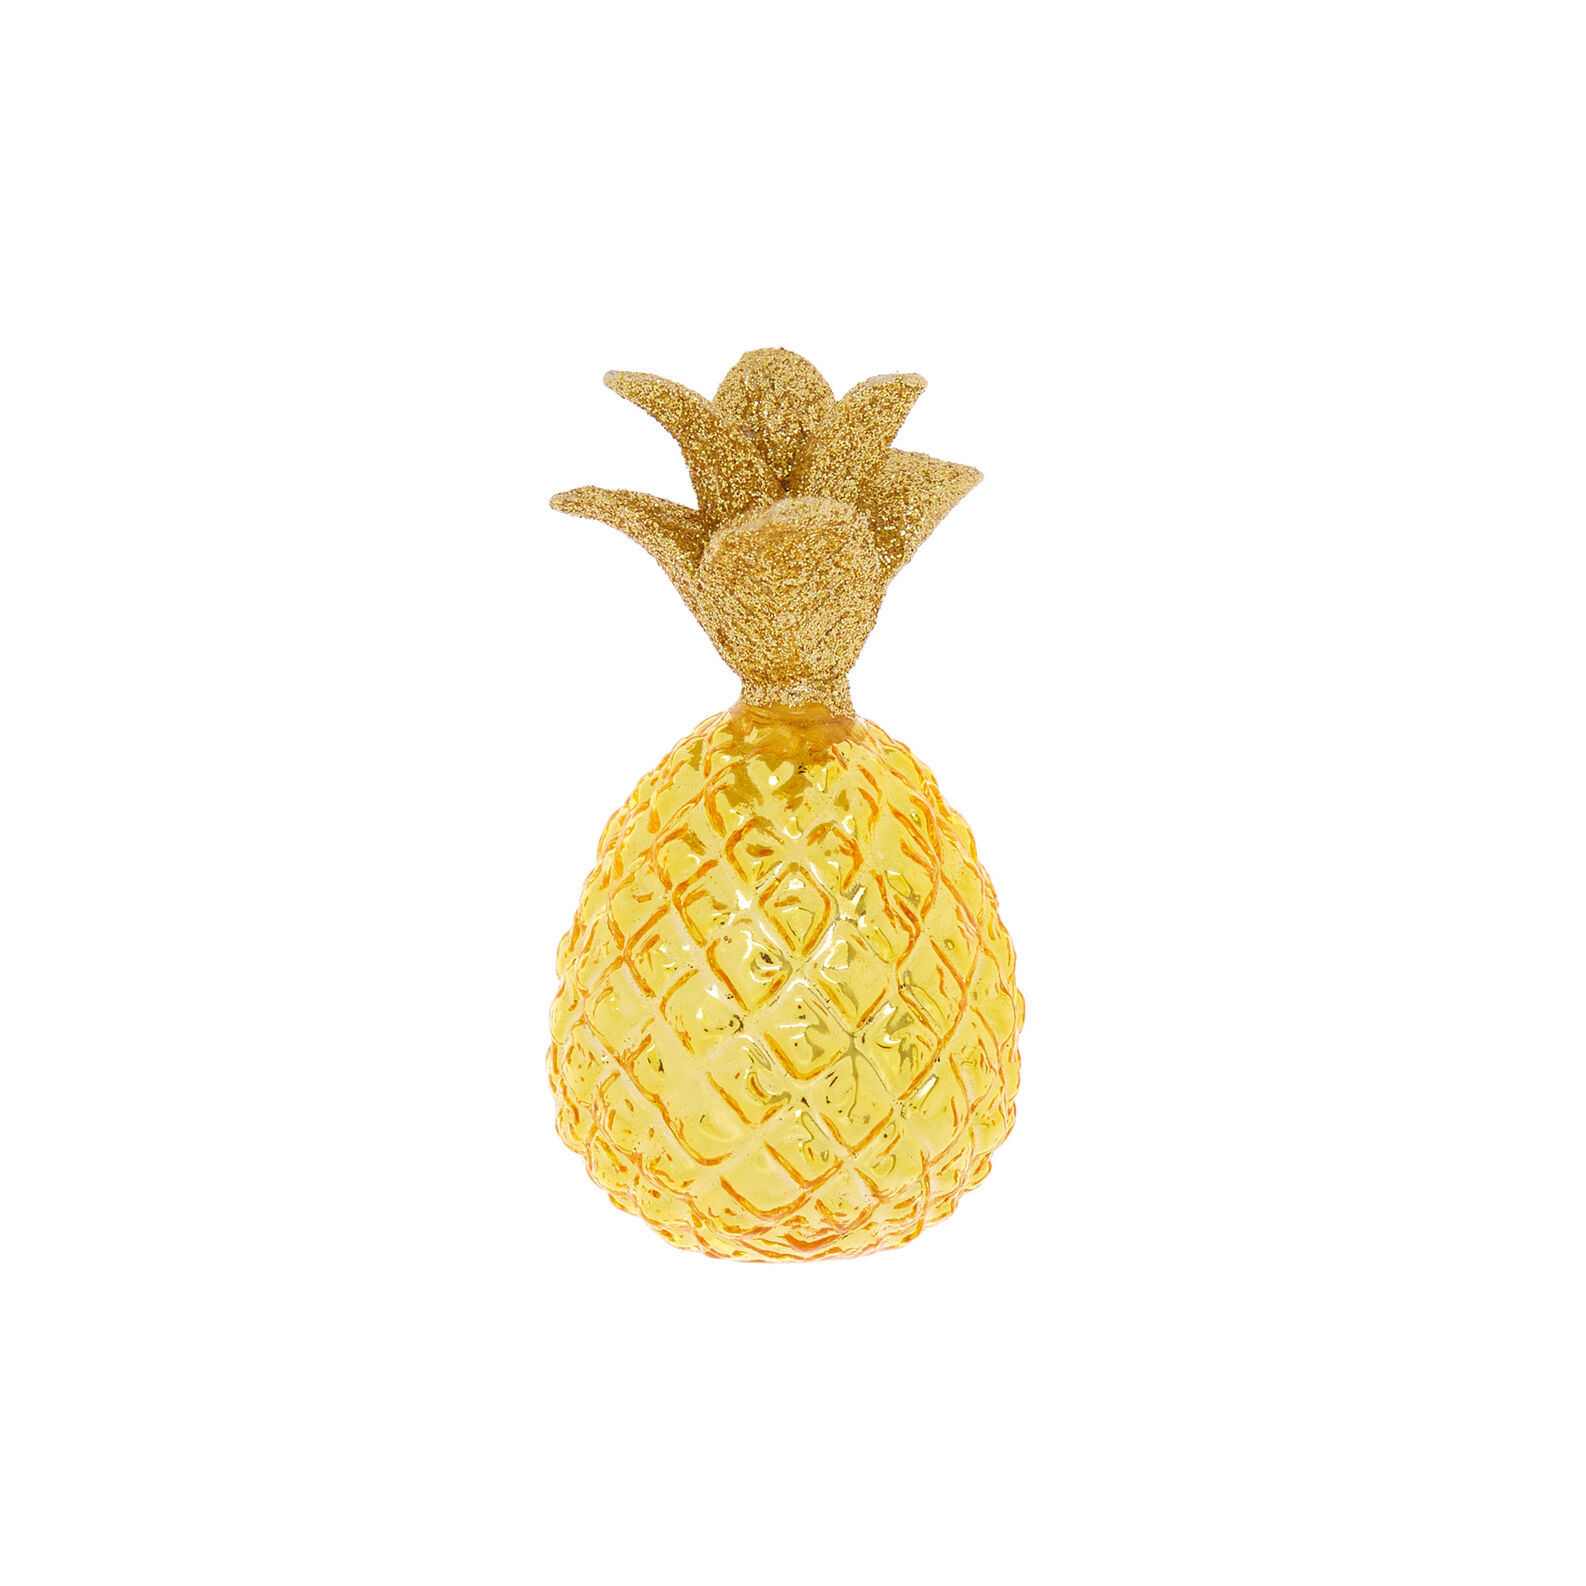 Hand-decorated pineapple decoration